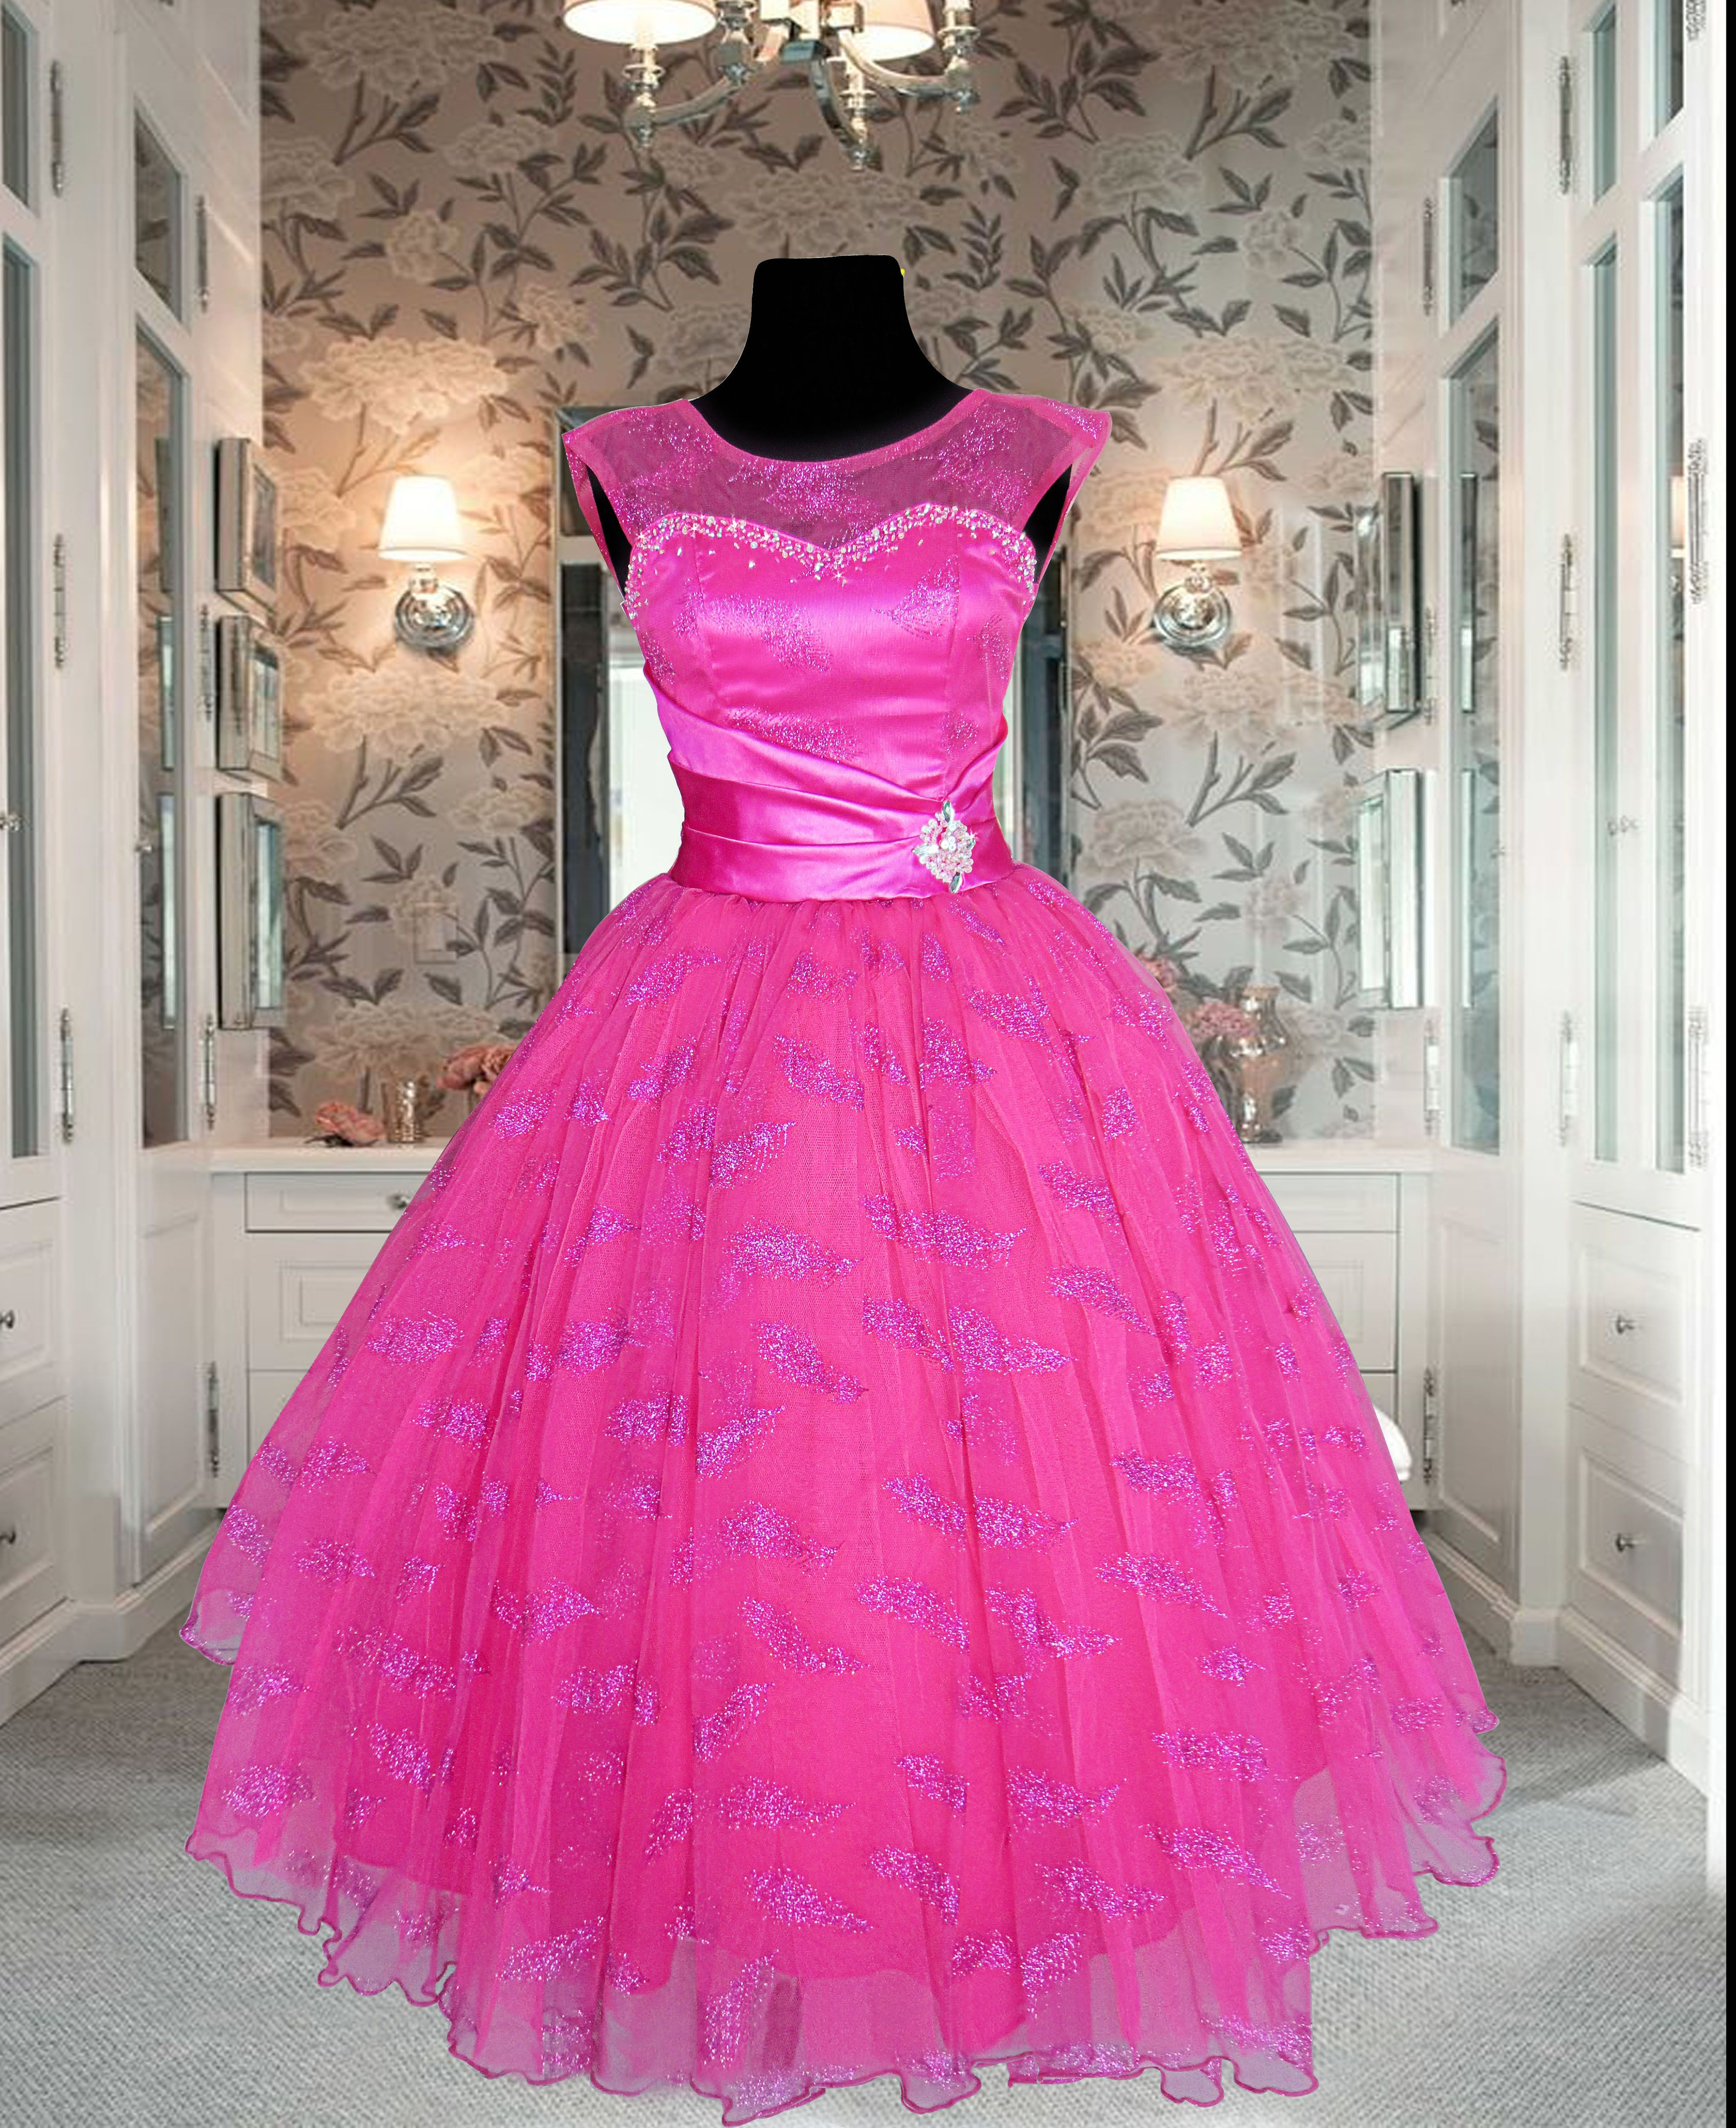 pink ball gown for rent Php1,000. www.gownforent.com Debut, flores ...